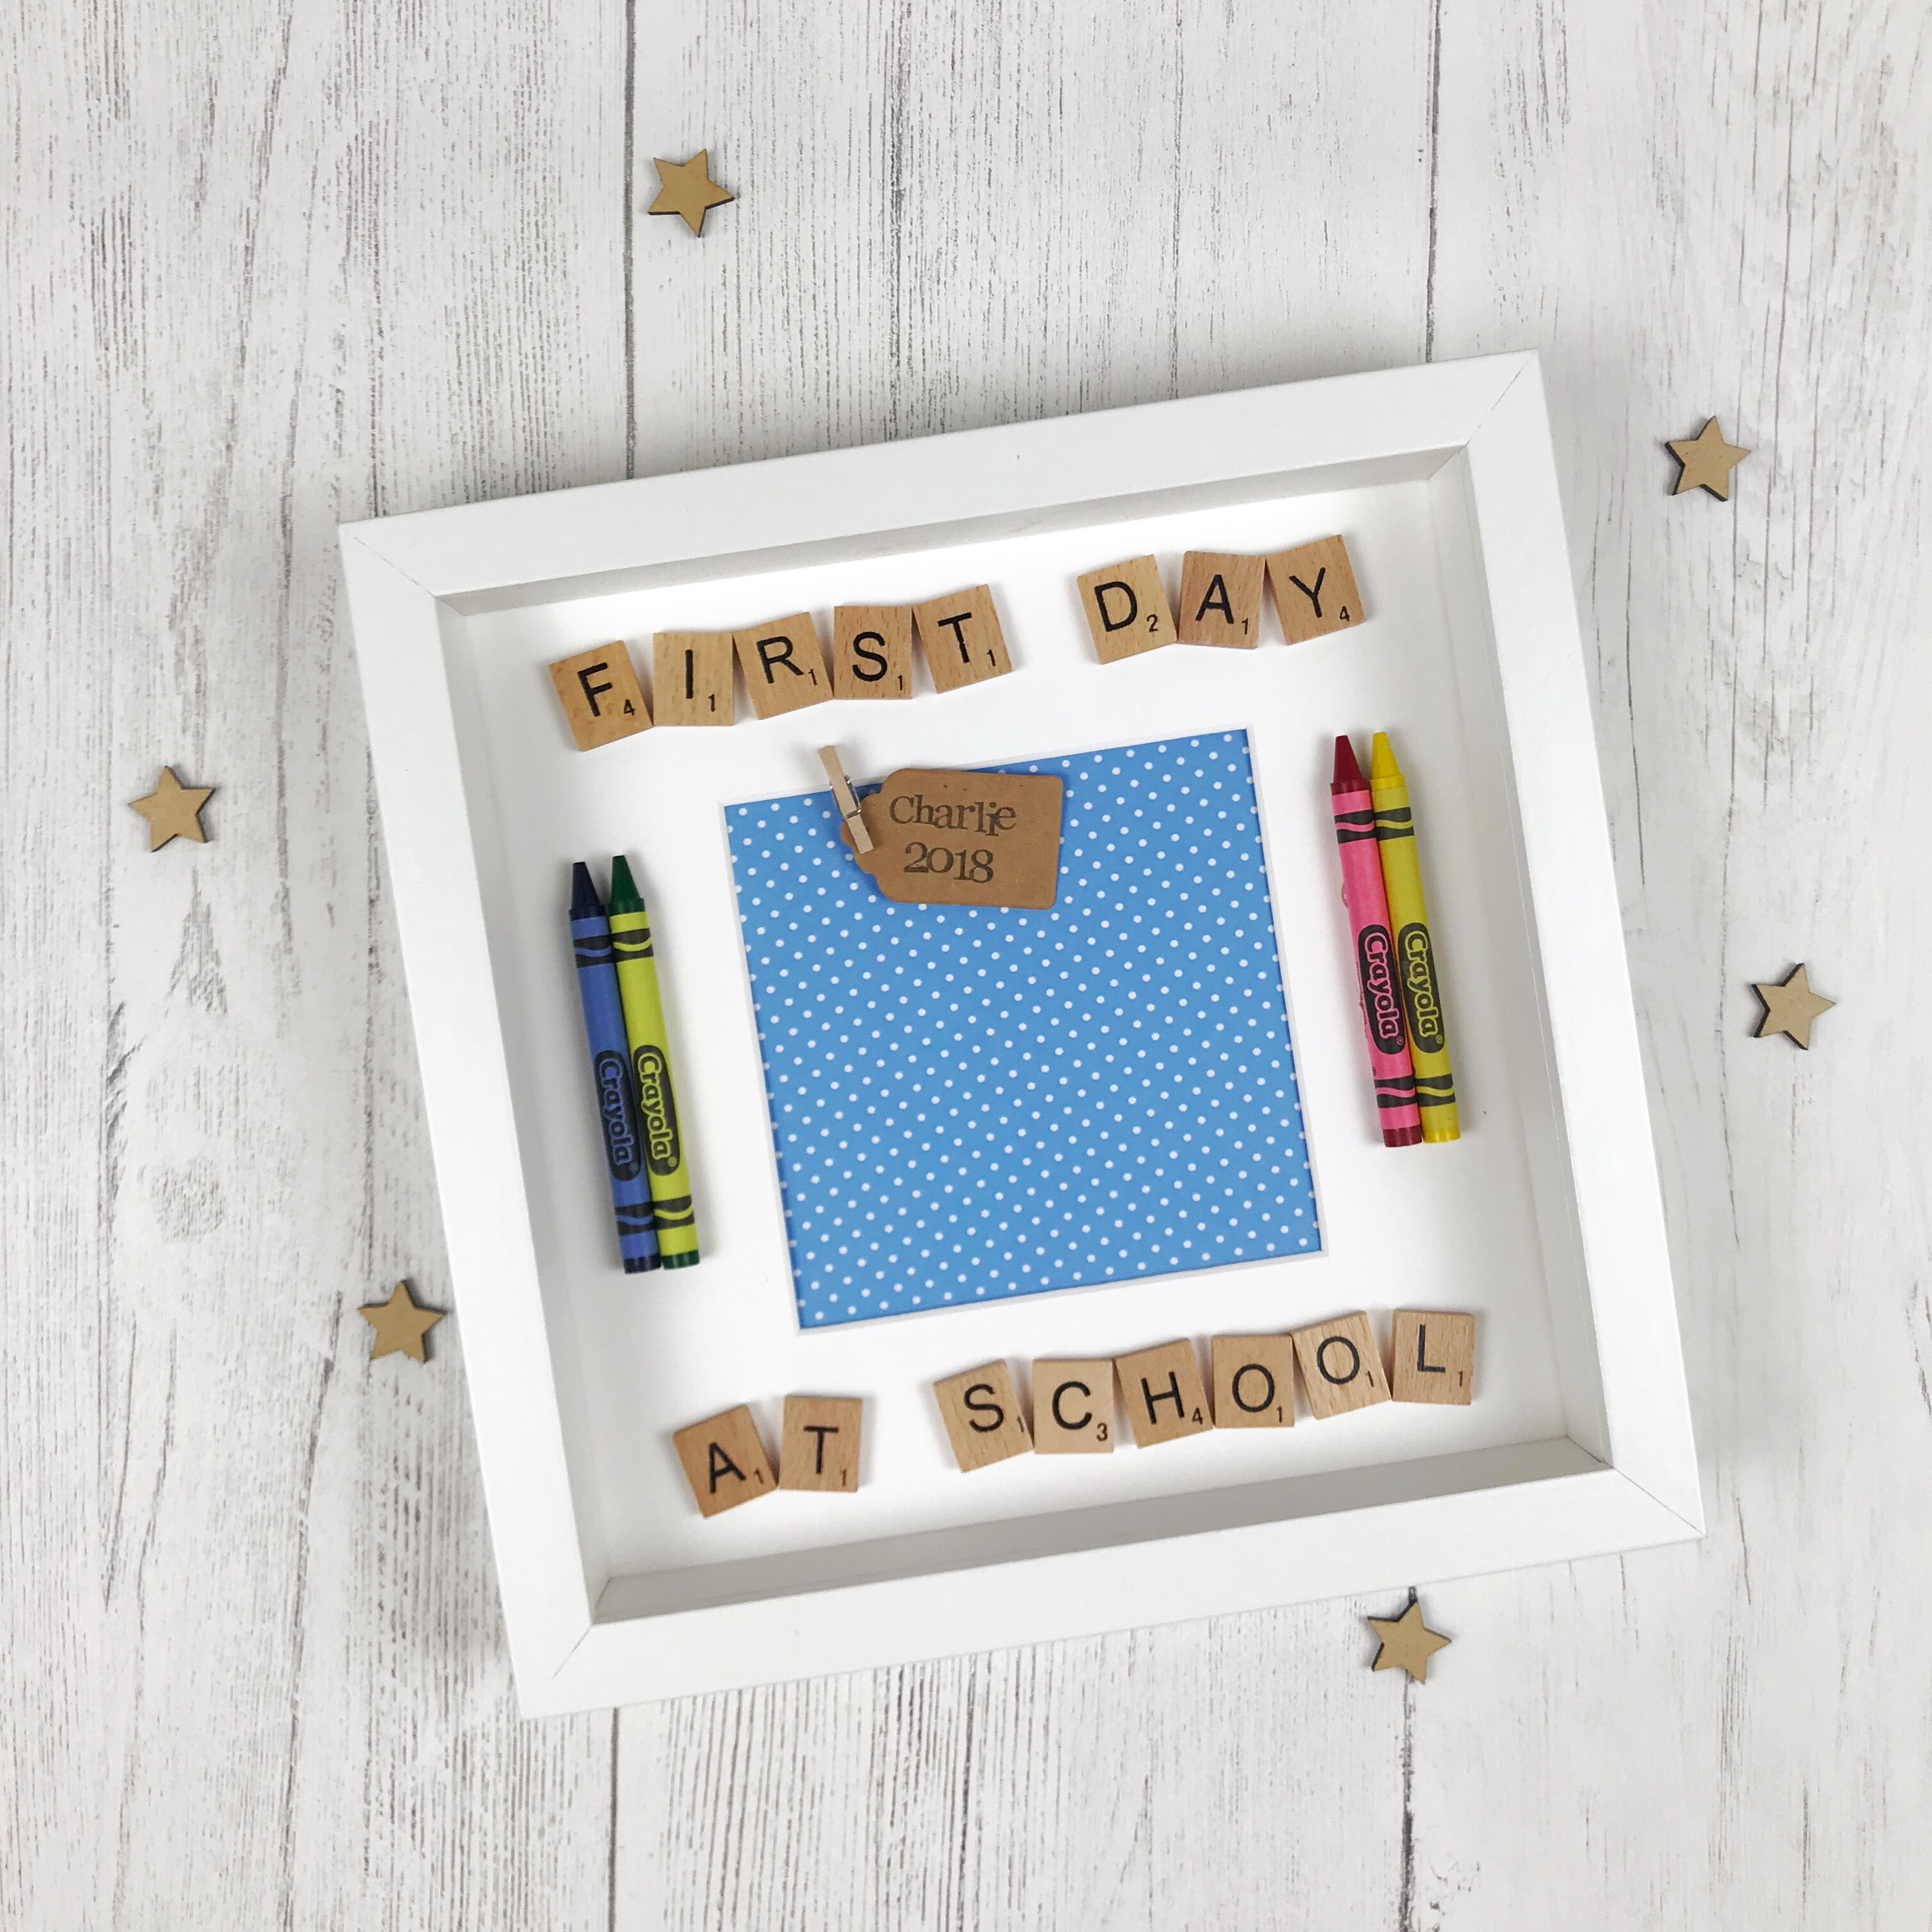 First Day At School Crayon Frame | Love Unique Personal